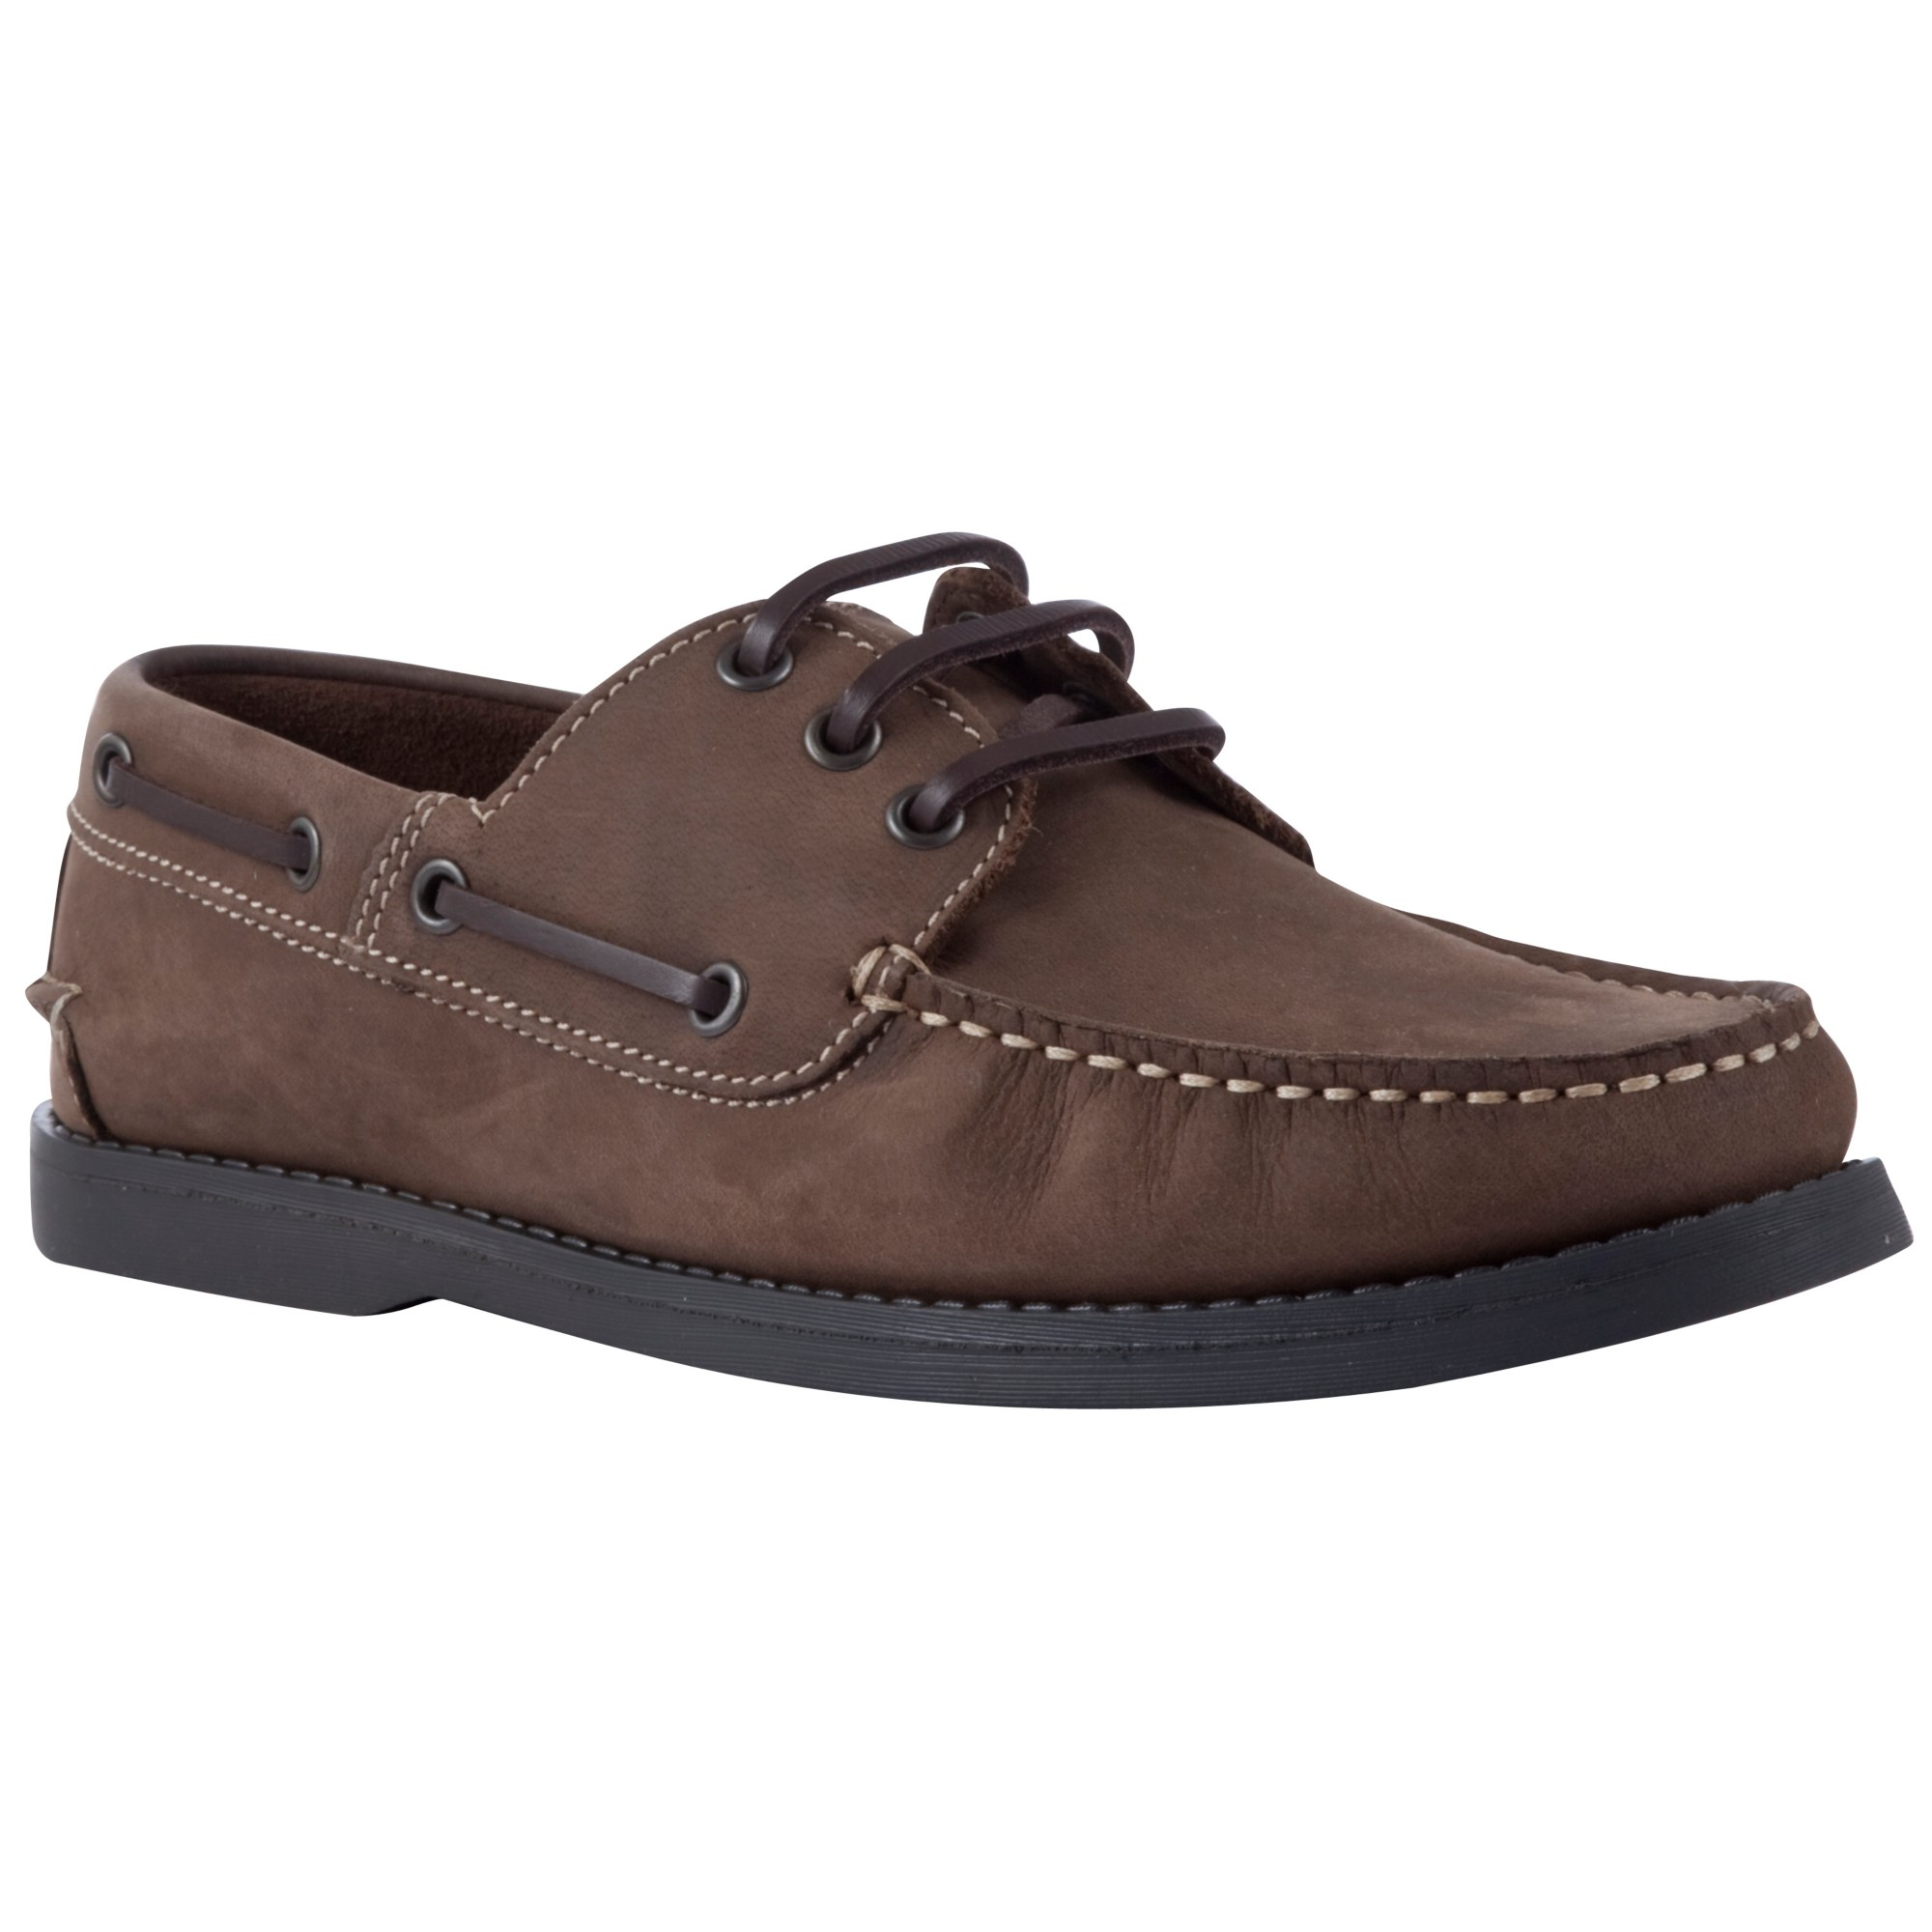 John Lewis Leather Boat Shoes In Brown For Men Lyst